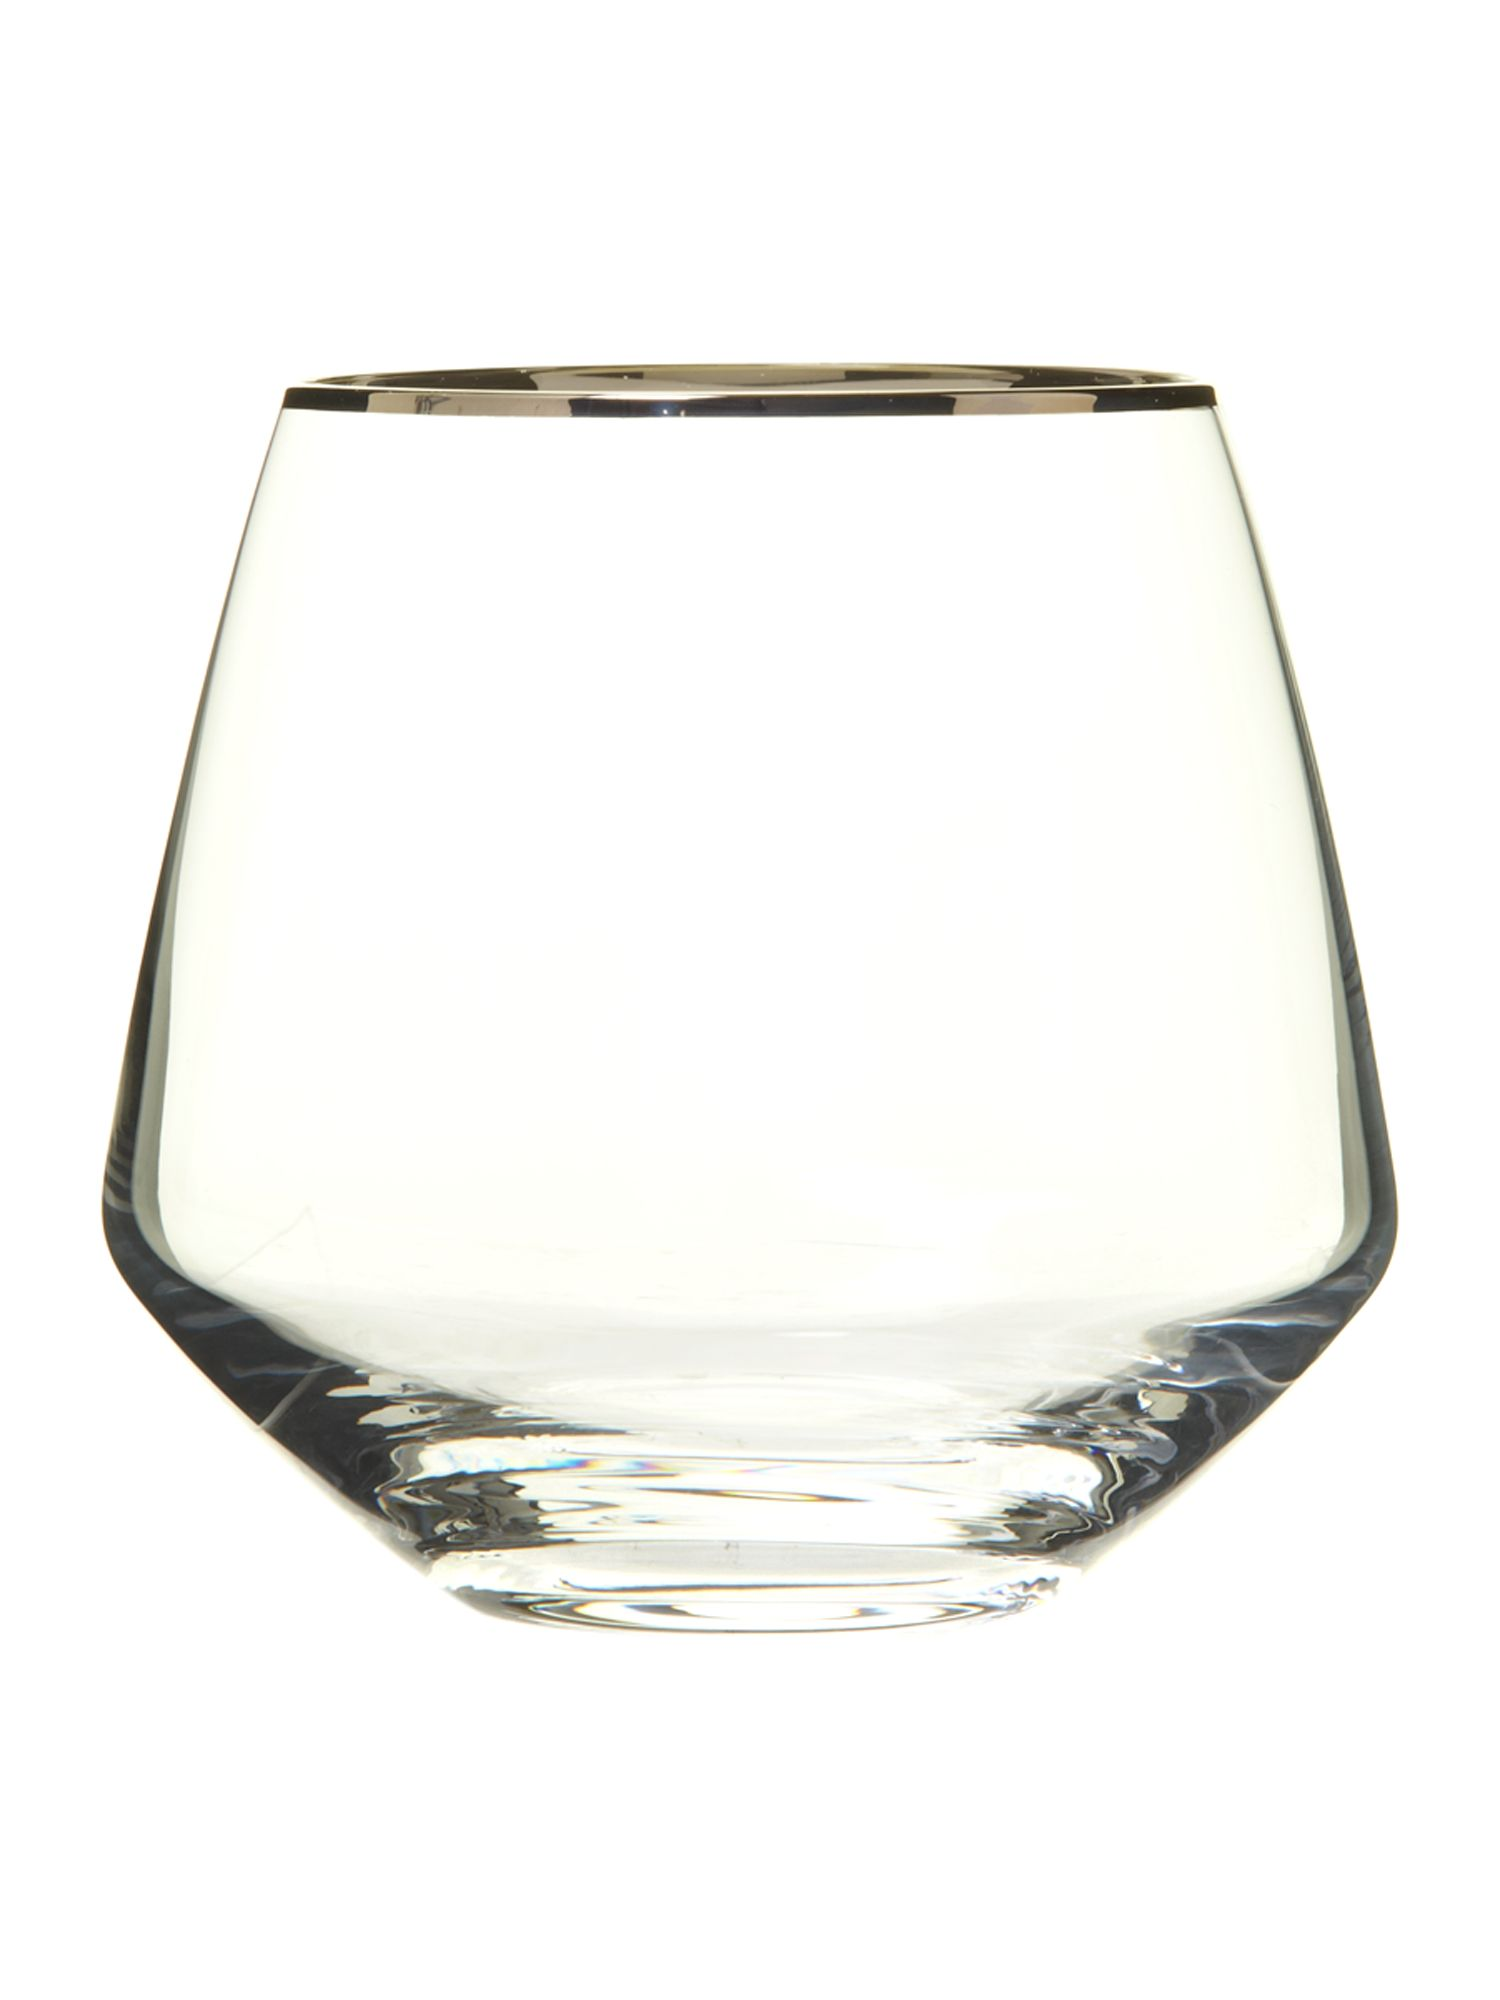 Platinum of tumbler set of 4